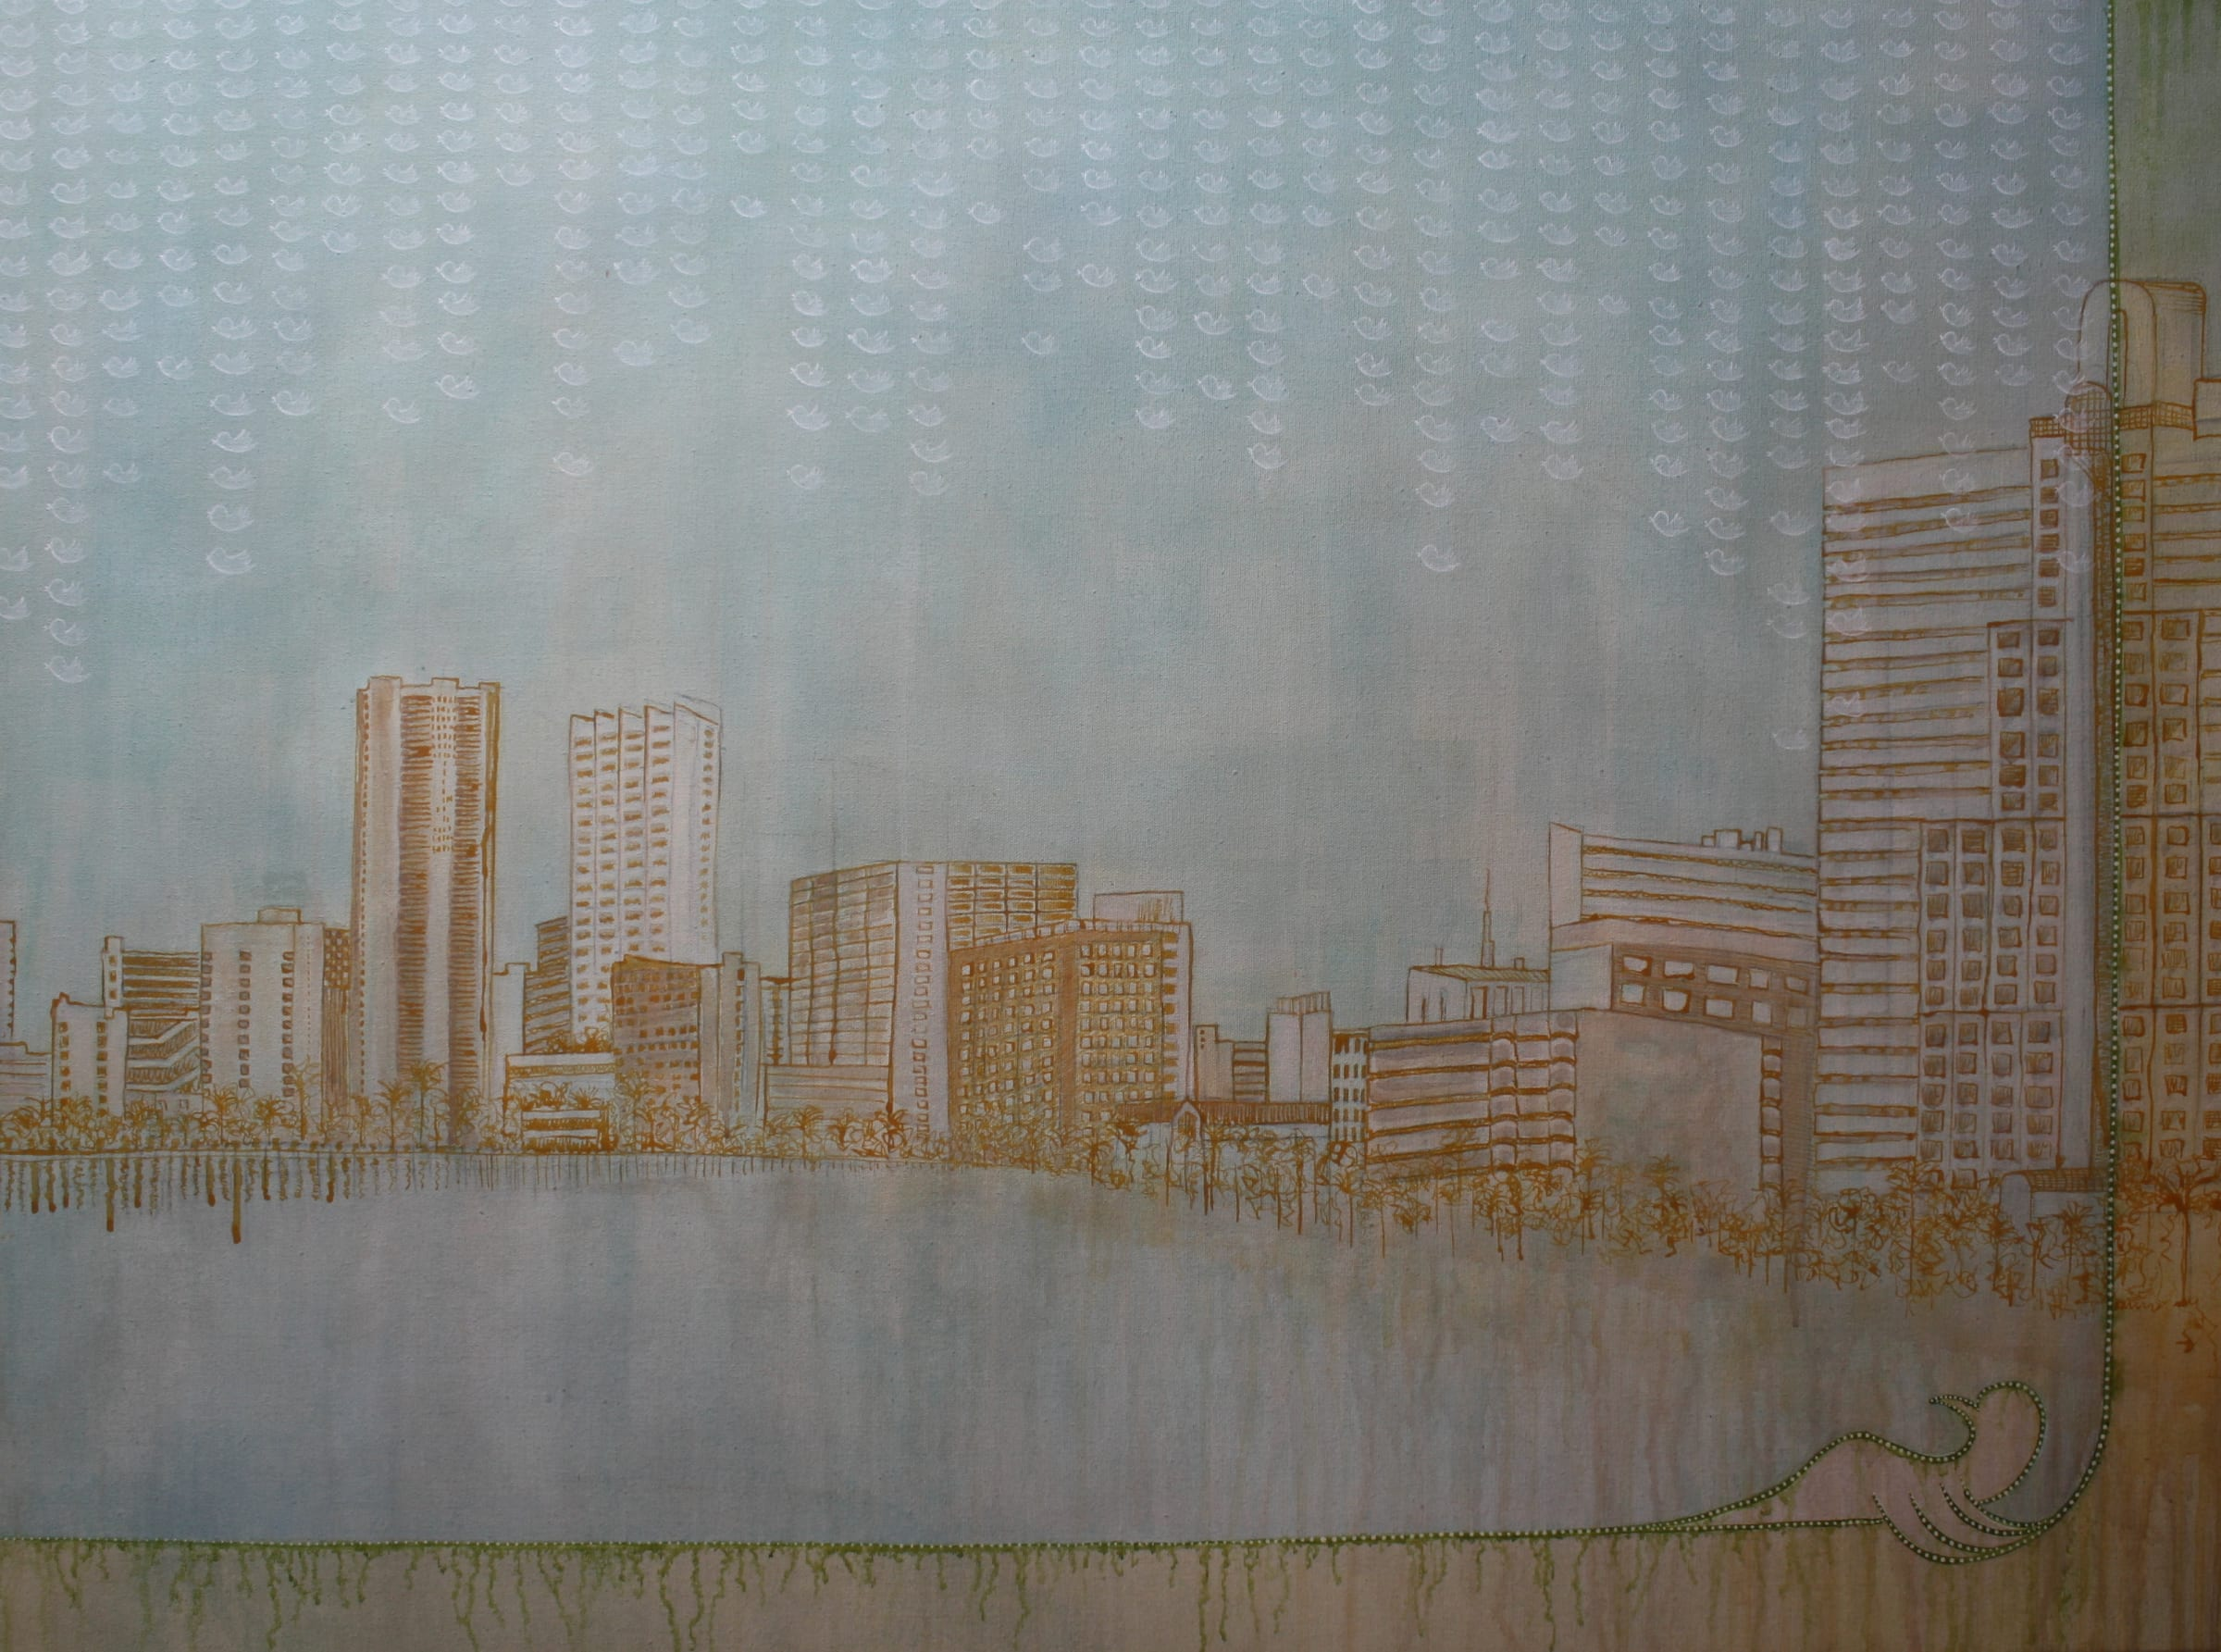 <span class=&#34;link fancybox-details-link&#34;><a href=&#34;/artworks/categories/121/613-robyn-field-all-about-penny-2016/&#34;>View Detail Page</a></span><div class=&#34;artist&#34;><strong>Robyn Field</strong></div> <div class=&#34;title&#34;><em>All About Penny</em>, 2016</div> <div class=&#34;medium&#34;>Charcoal, acrylic and Indian ink on canvas</div> <div class=&#34;dimensions&#34;>76cm x 102cm</div>